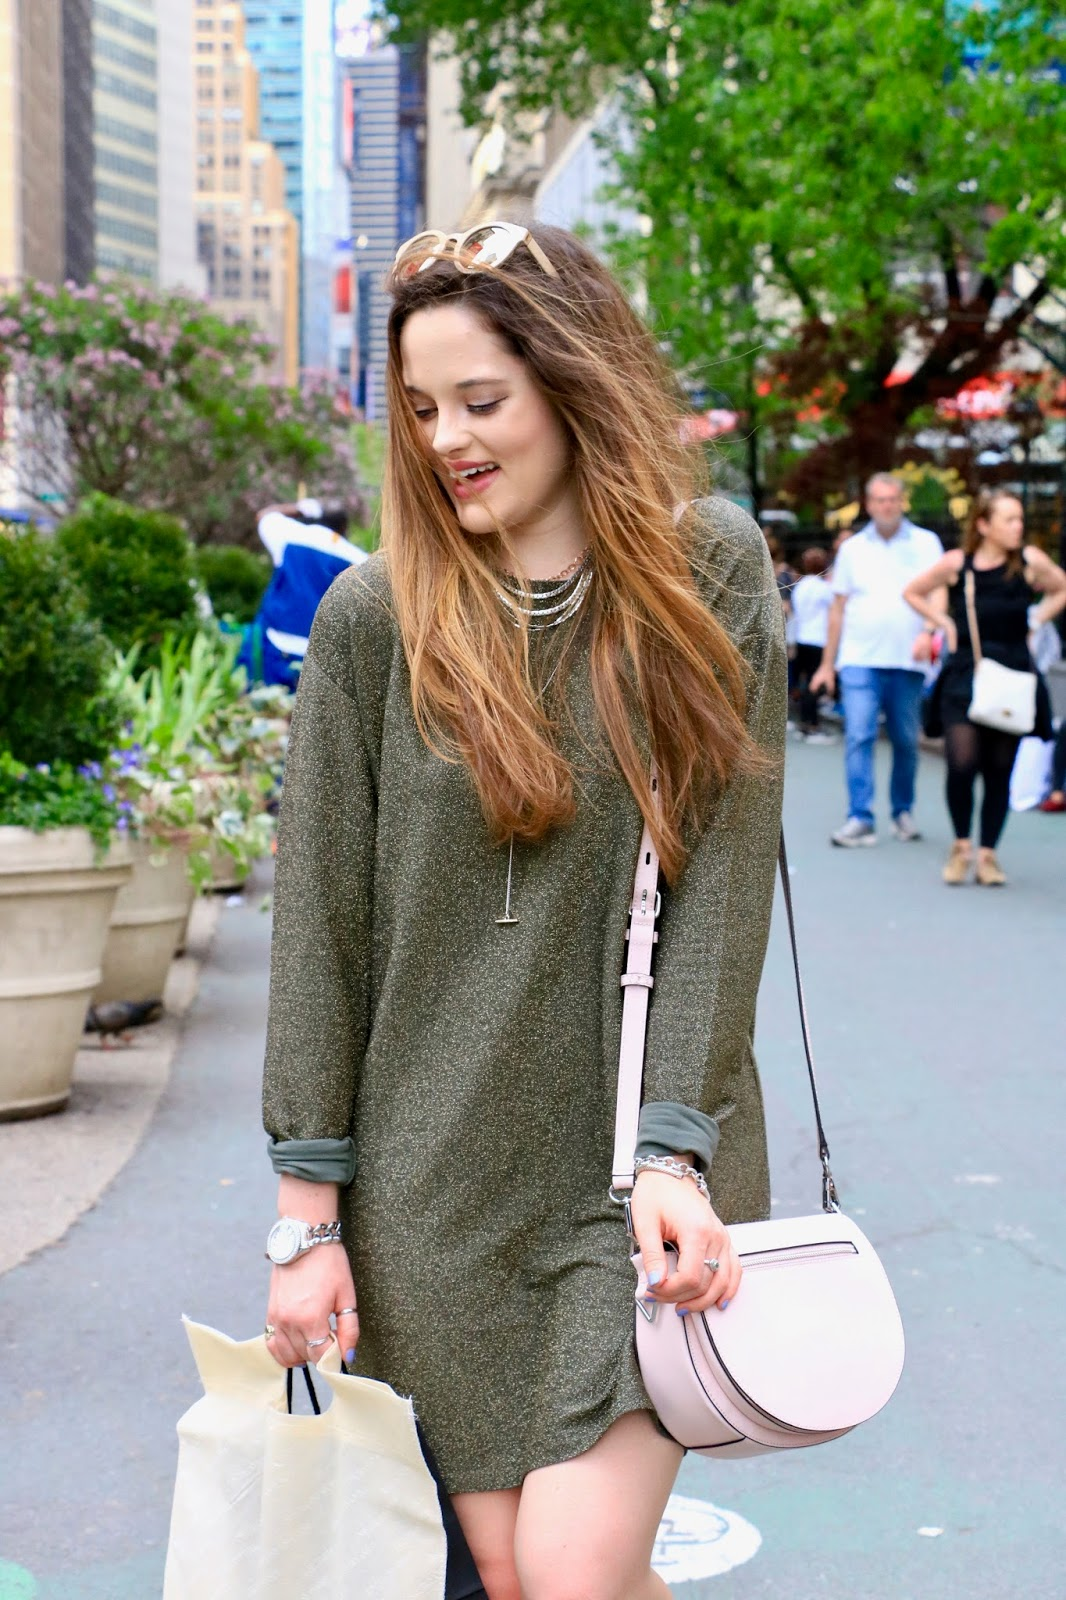 Fashion blogger Kathleen Harper shopping in NYC